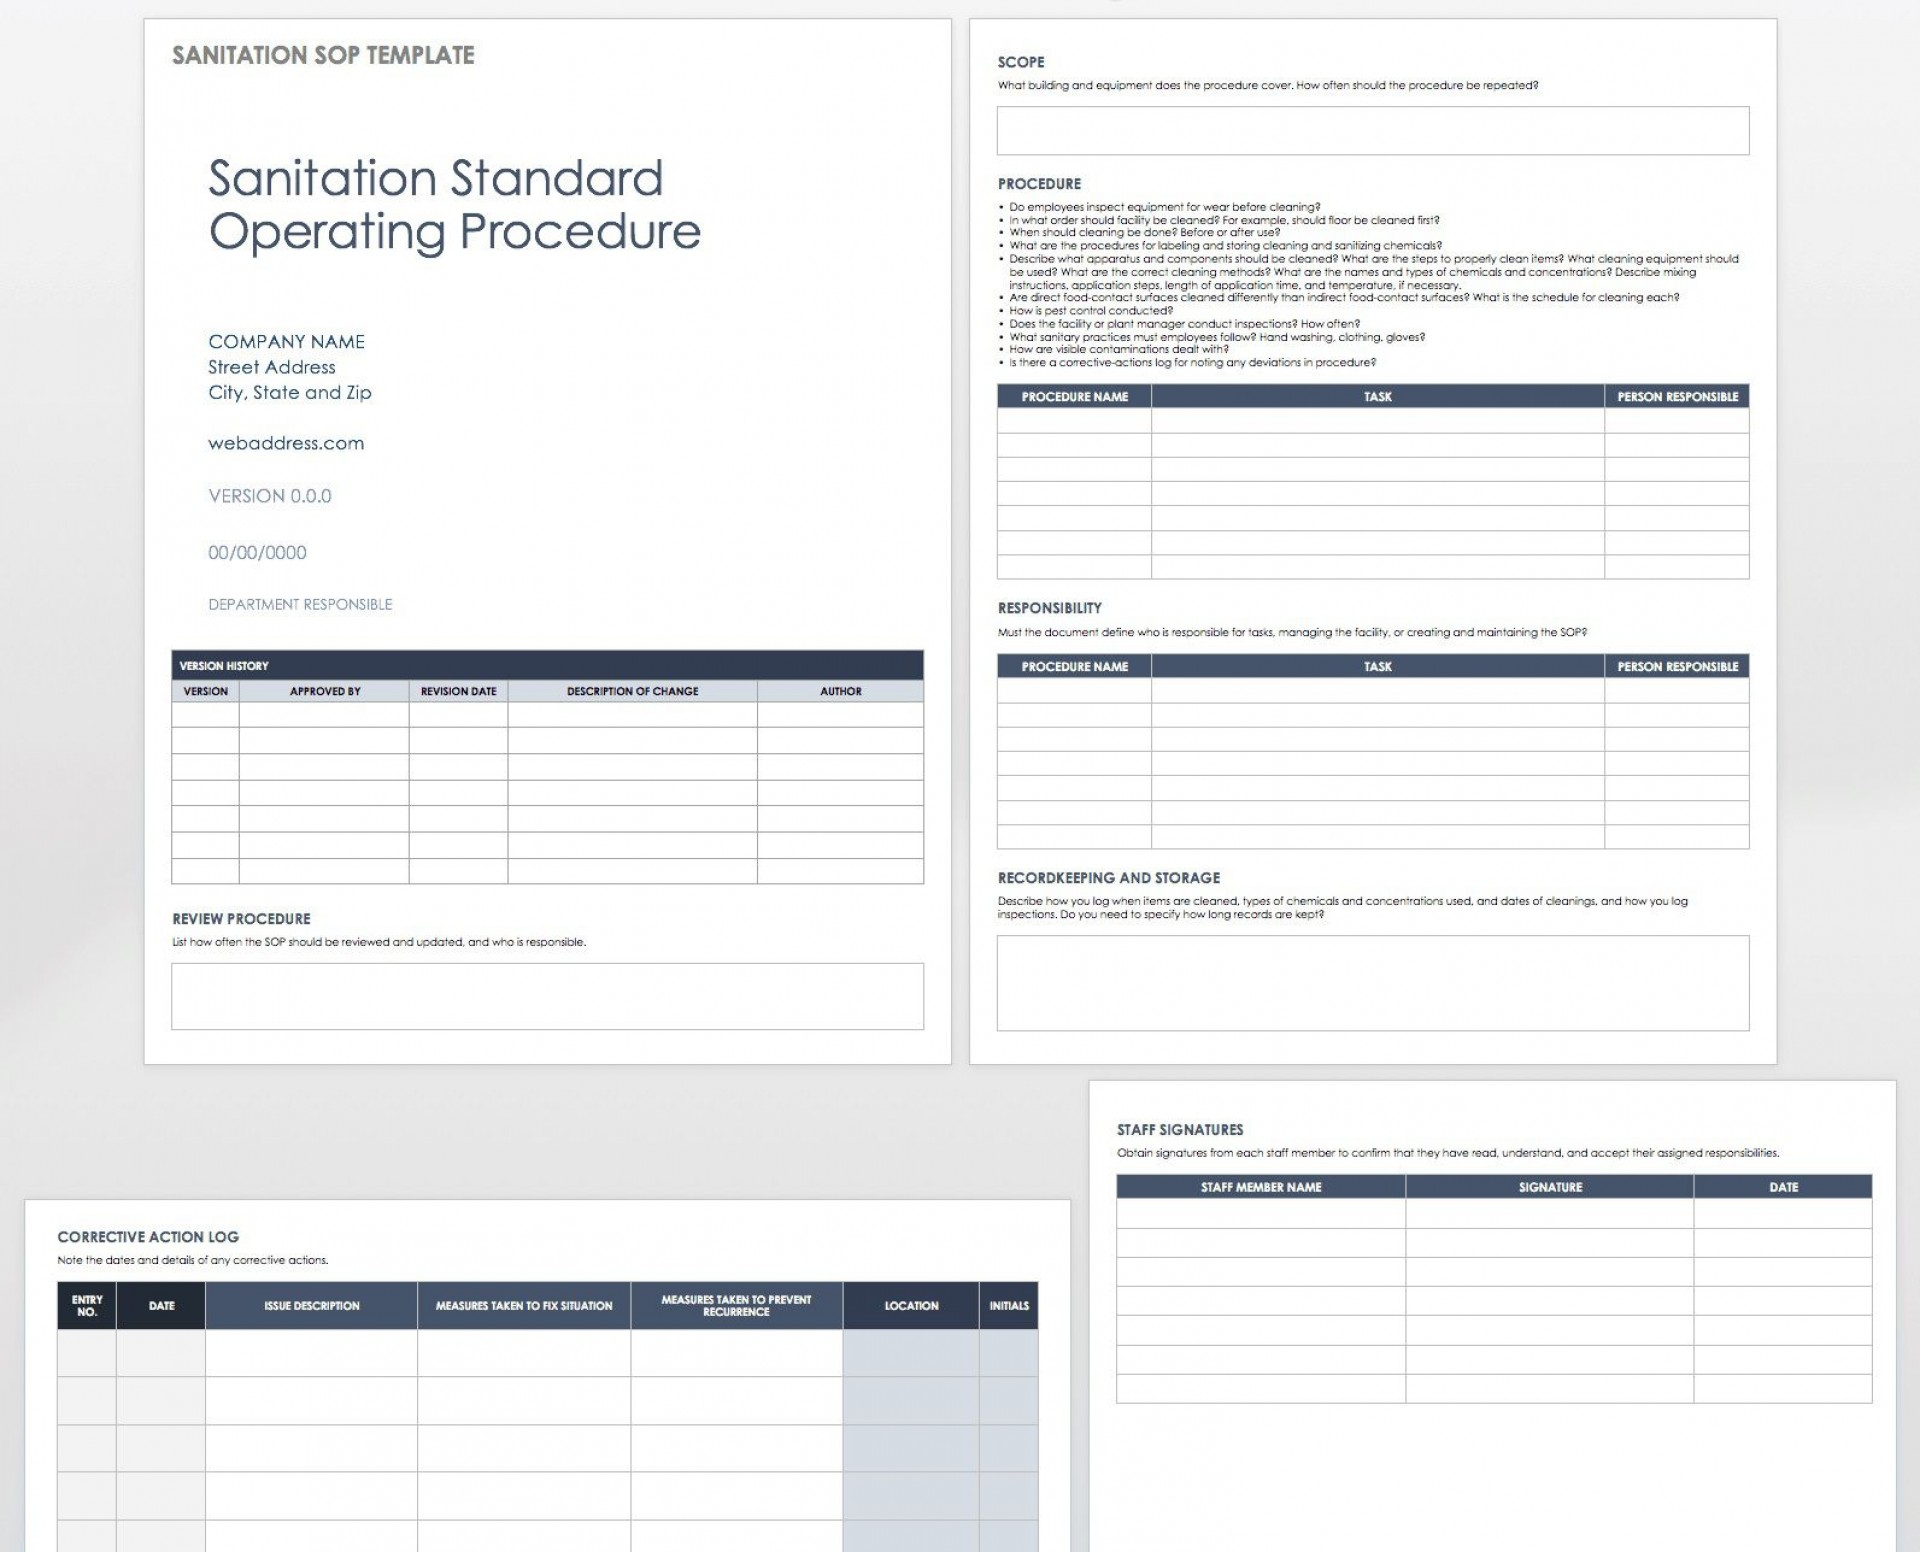 005 Amazing Standard Operating Procedure Template Word Image  Microsoft (sop) Format Download1920